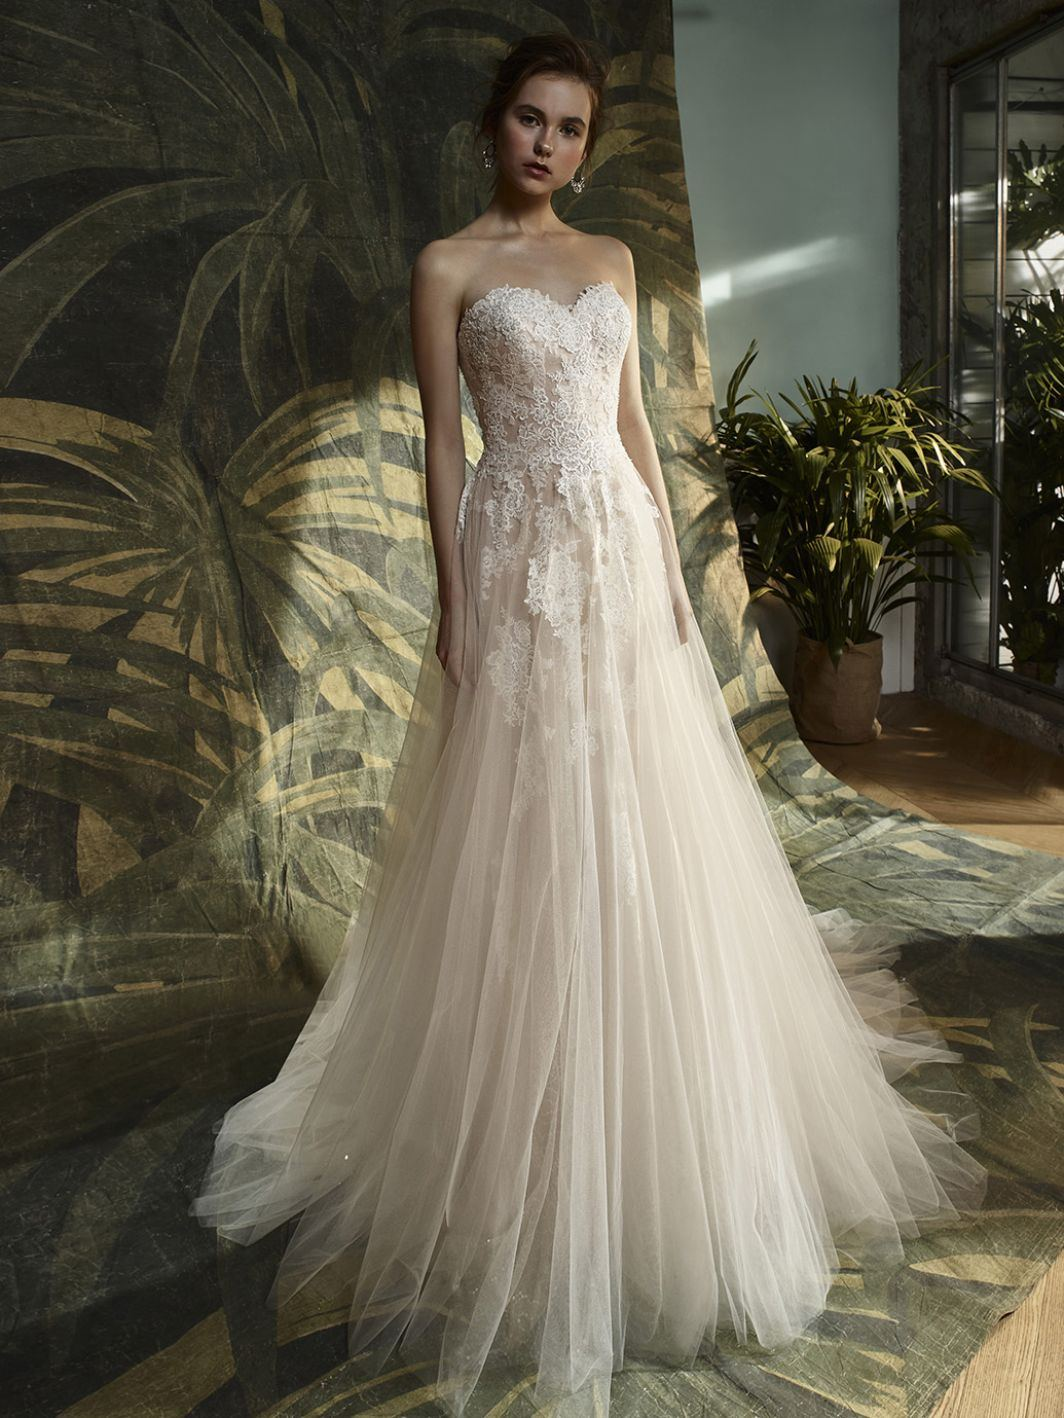 Donna Sayers Fabulous Bridal - 1